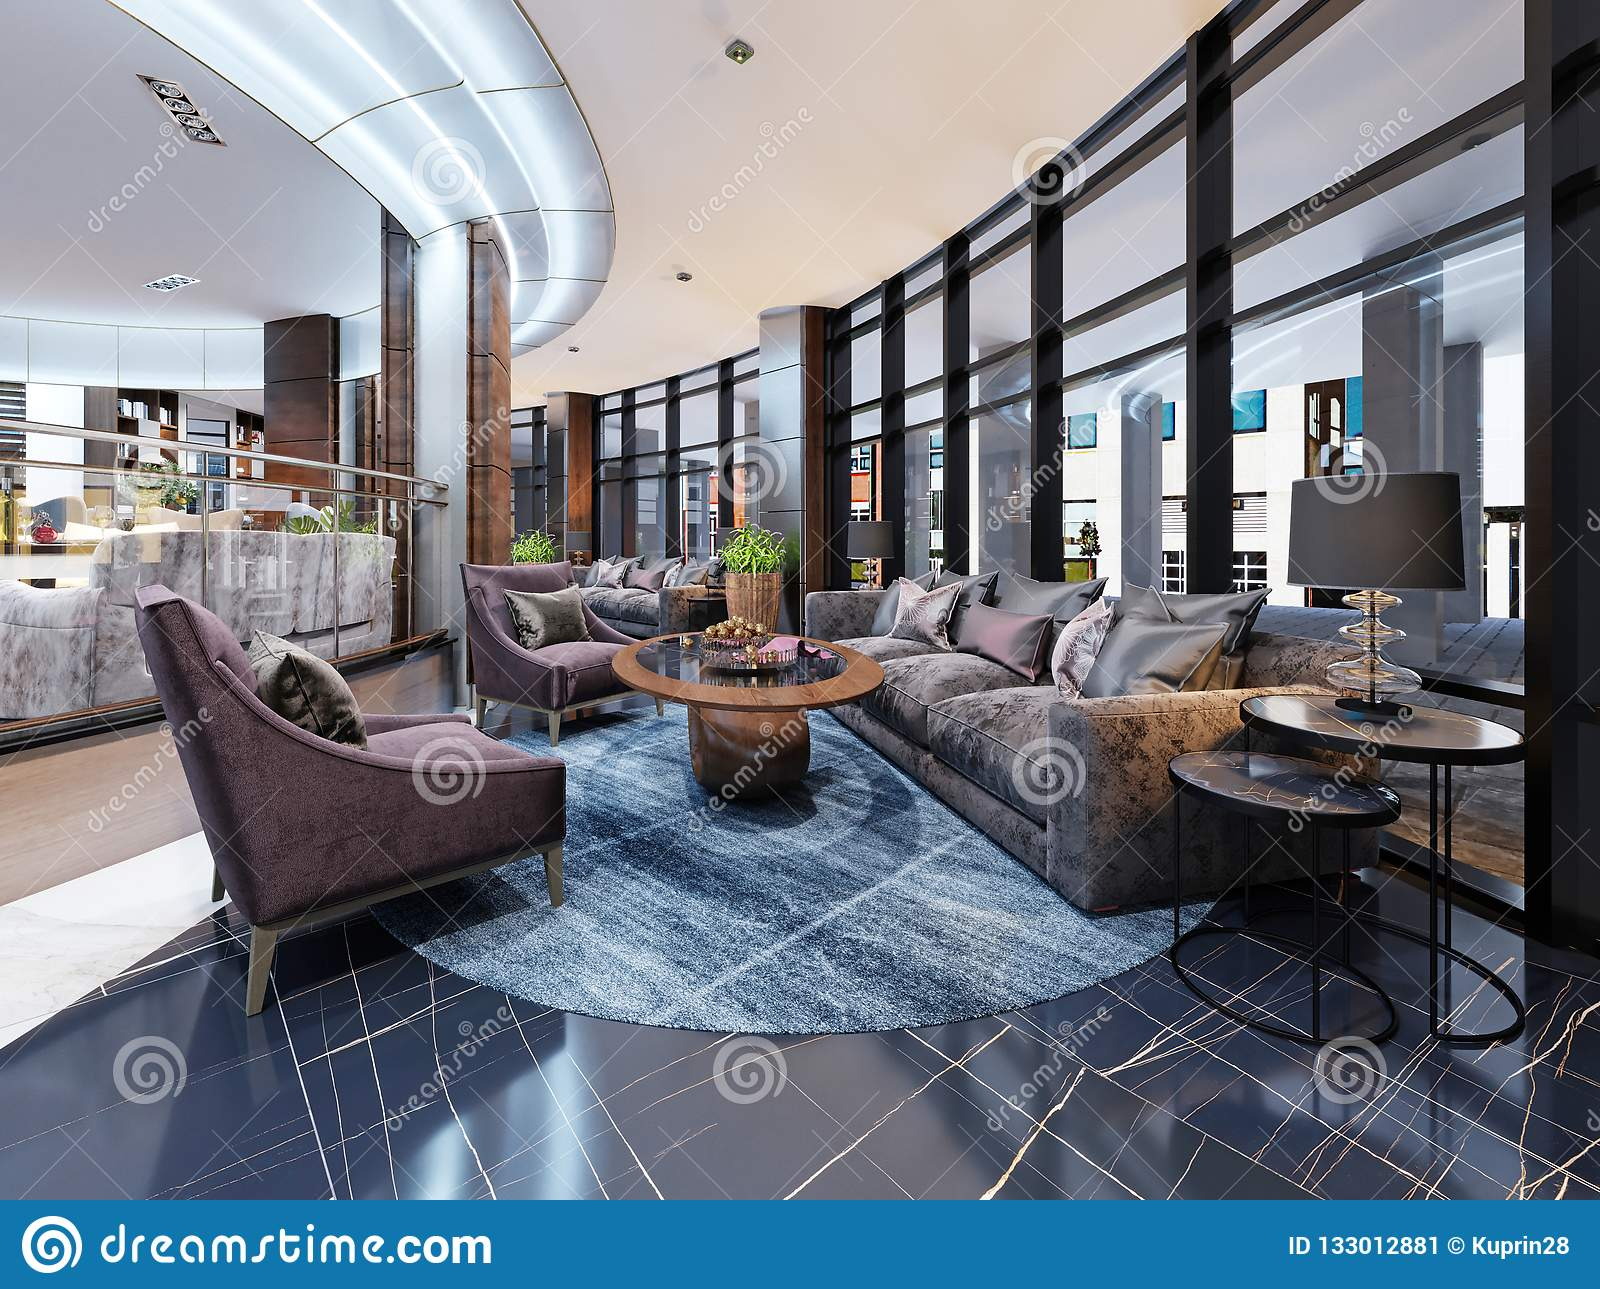 Contemporary Hotel Interior Design, Hotel Lobby, Rest Area With Comfortable Modern Furniture